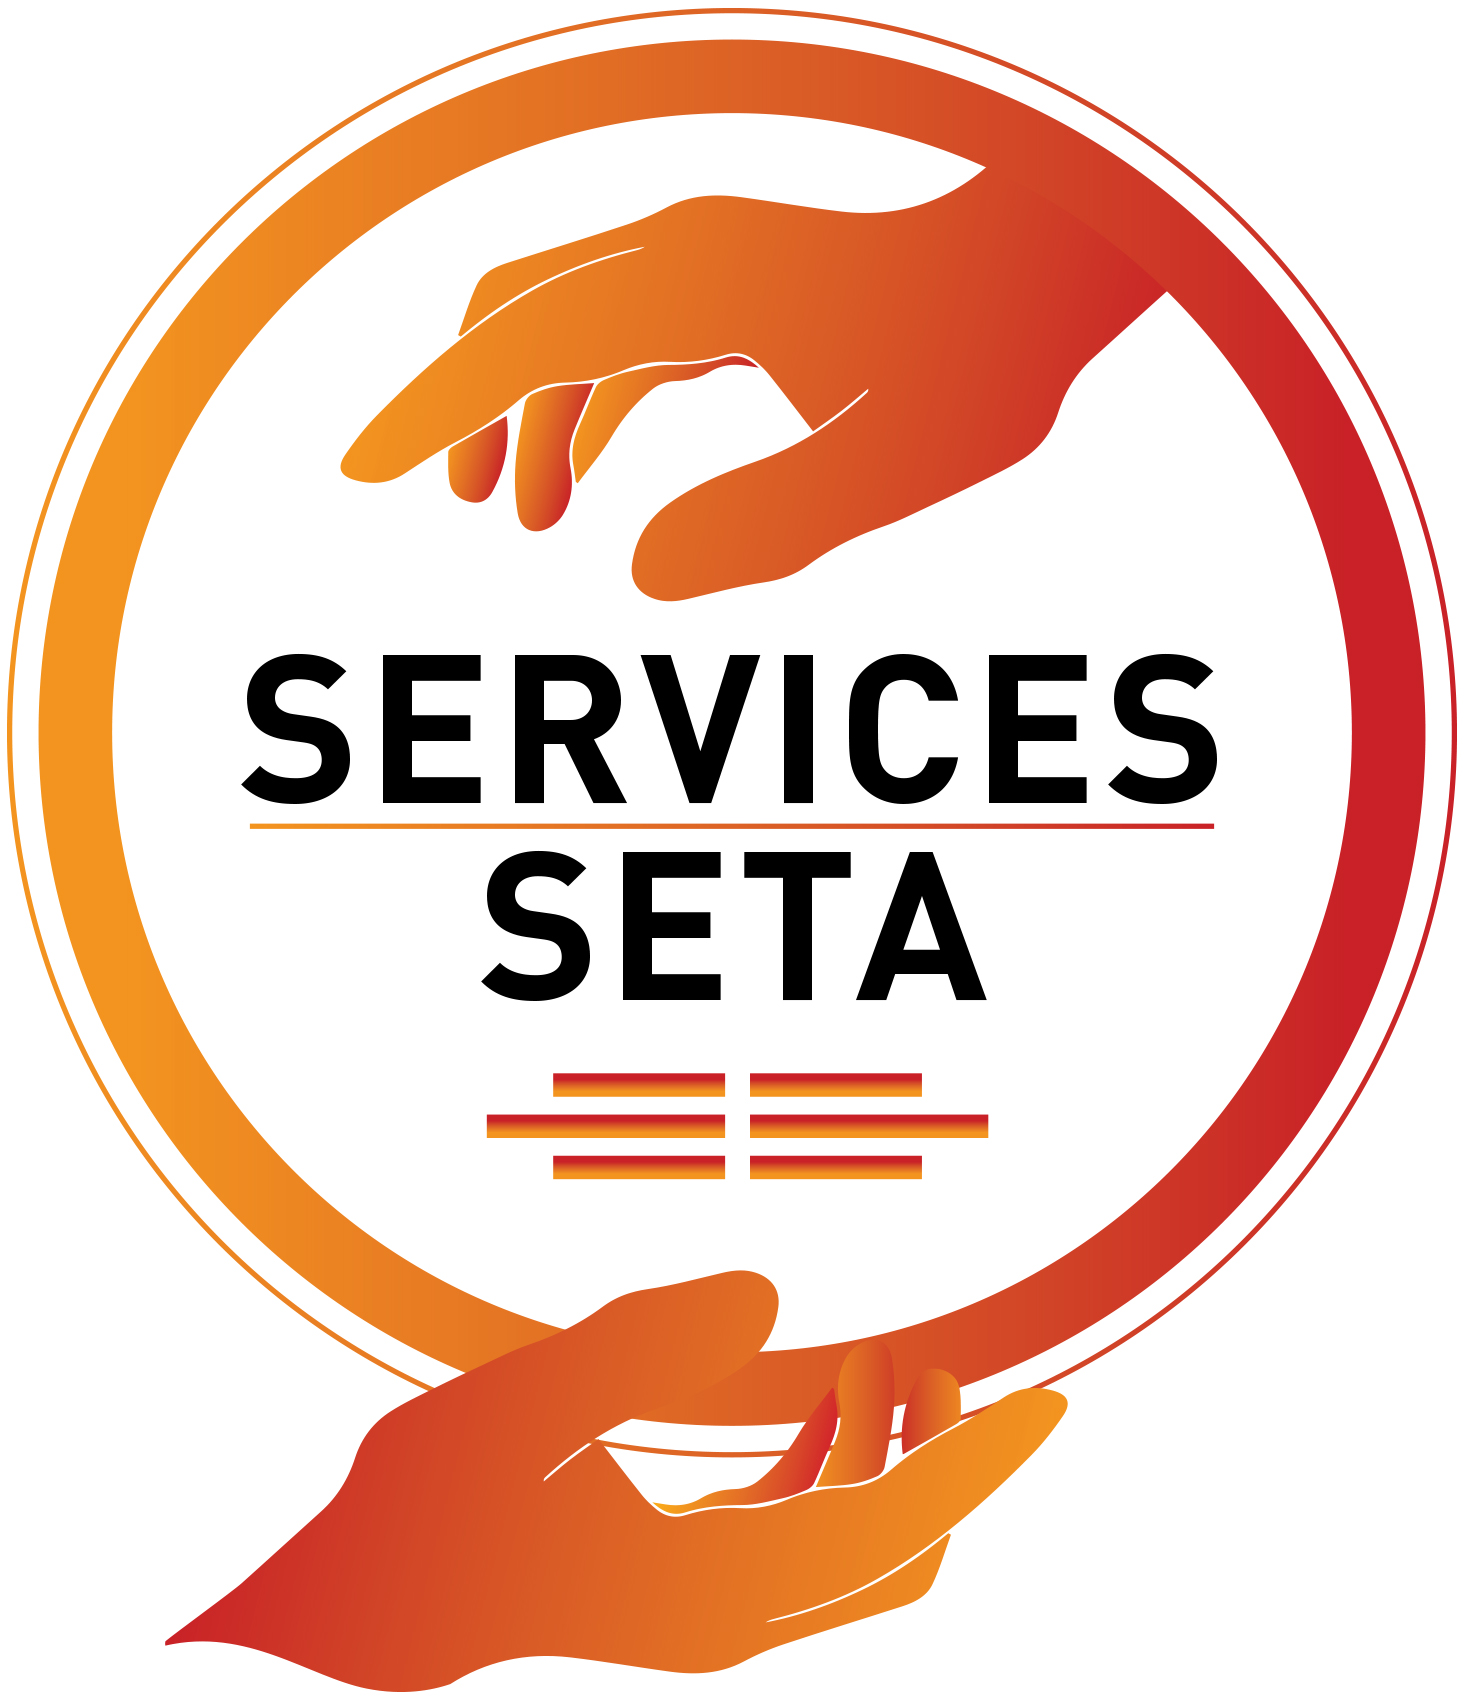 Accredited by Services SETA decision number: 0873